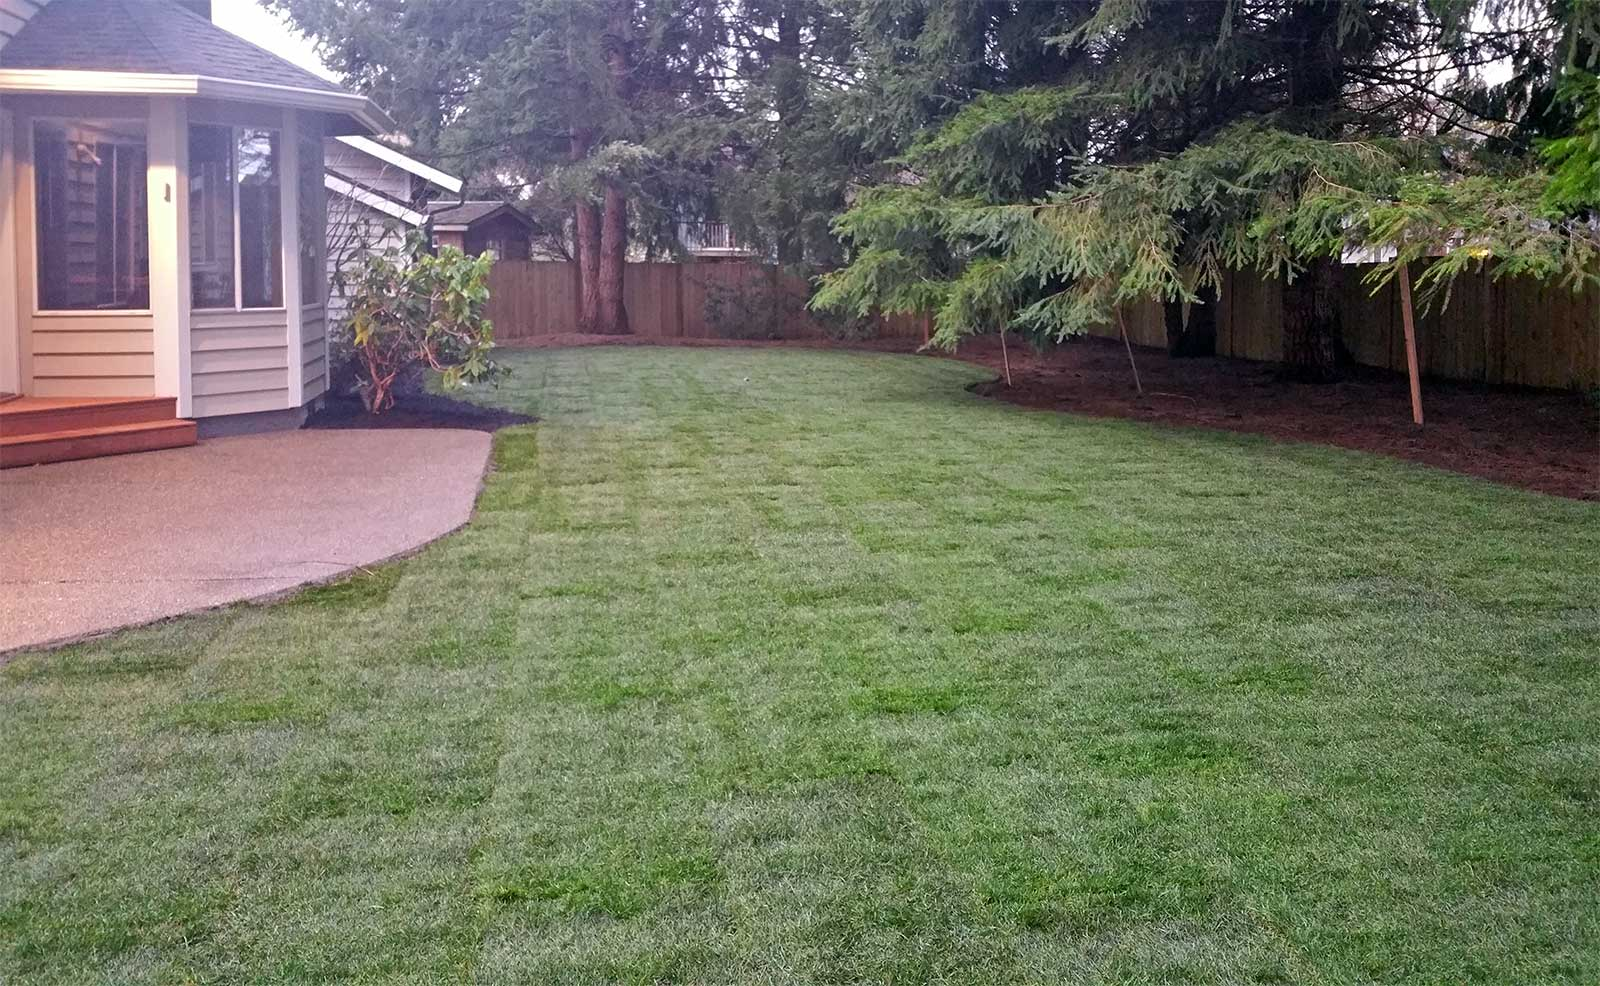 Sod replacement is a fast, effective way to install a new lawn without having to wait for seed to grow.